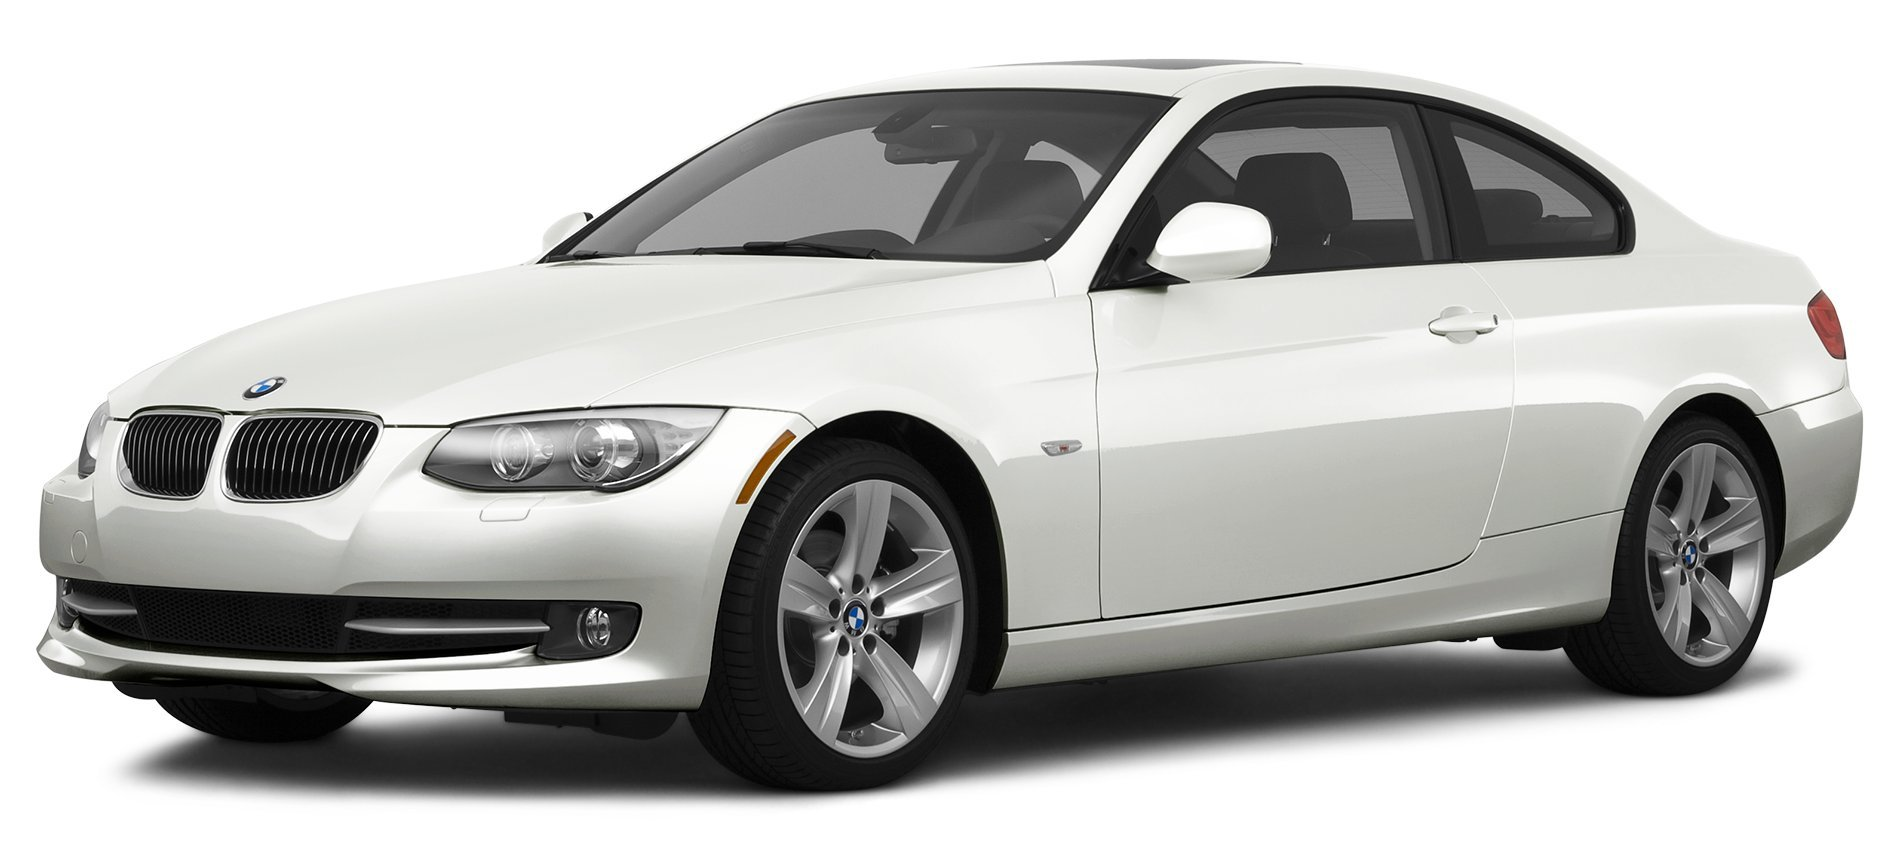 2011 bmw 328i xdrive reviews images and specs vehicles. Black Bedroom Furniture Sets. Home Design Ideas